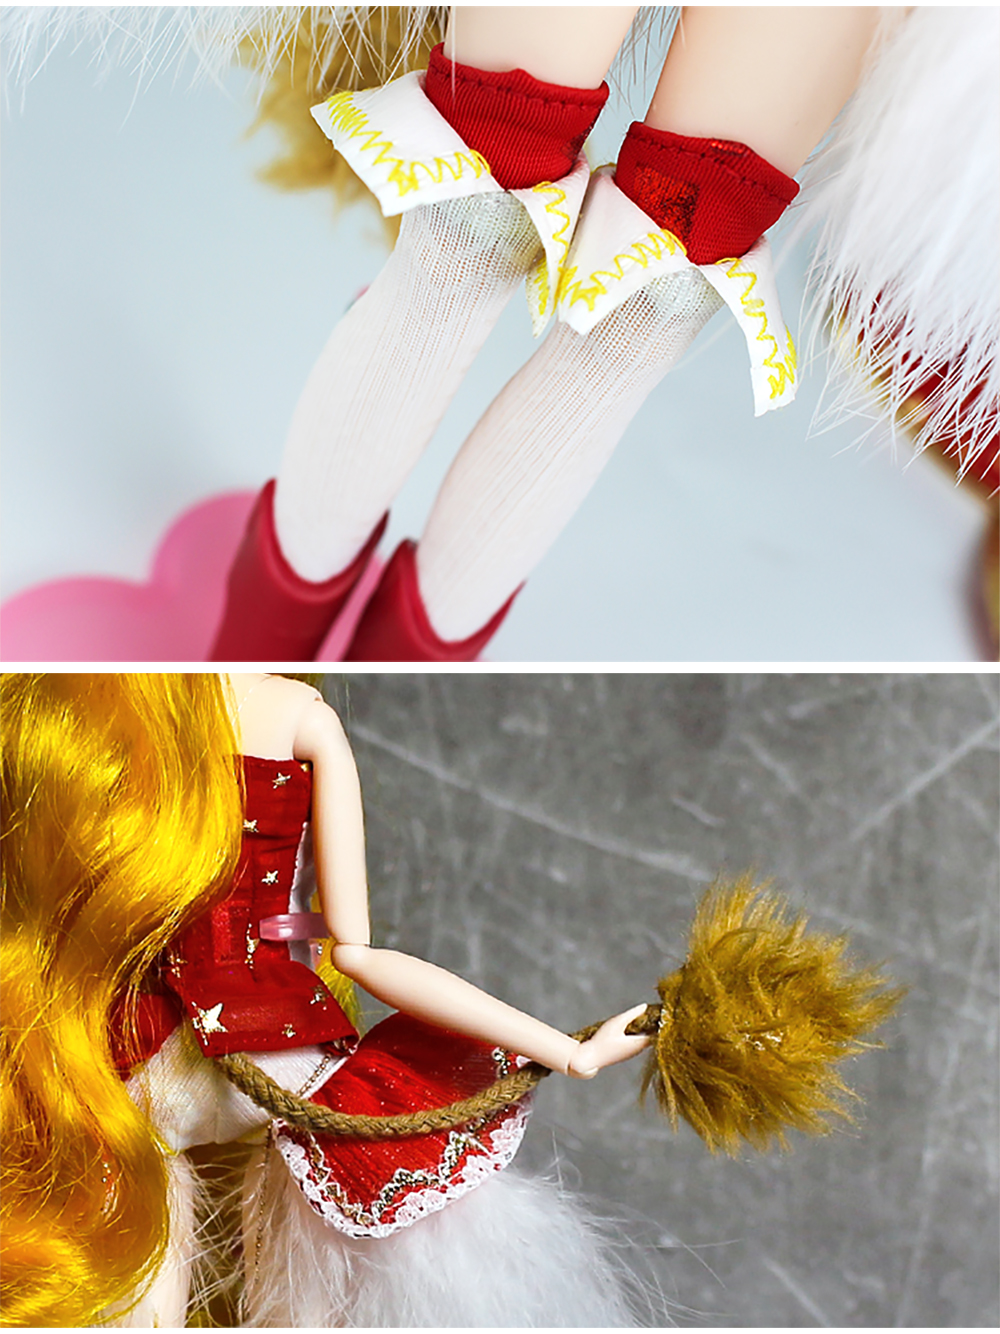 MMG-Girl-fortune-days-BJD-doll-12-constellations-LEO-with-cool-red-outfit-boots-tail-stand (5)